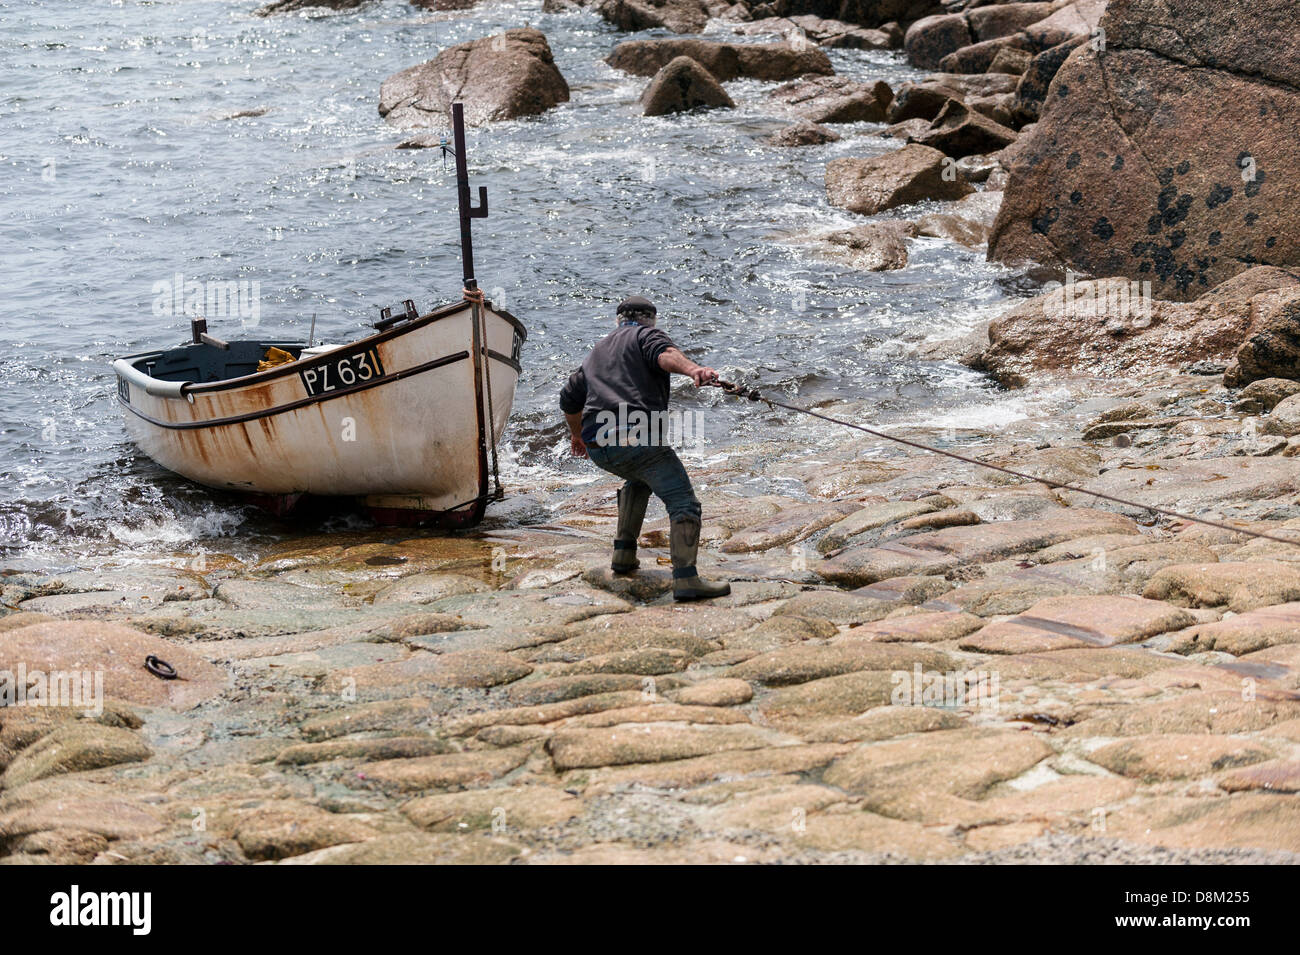 A Cornish fisherman recovering his fishing boat in Penberth Cove. - Stock Image